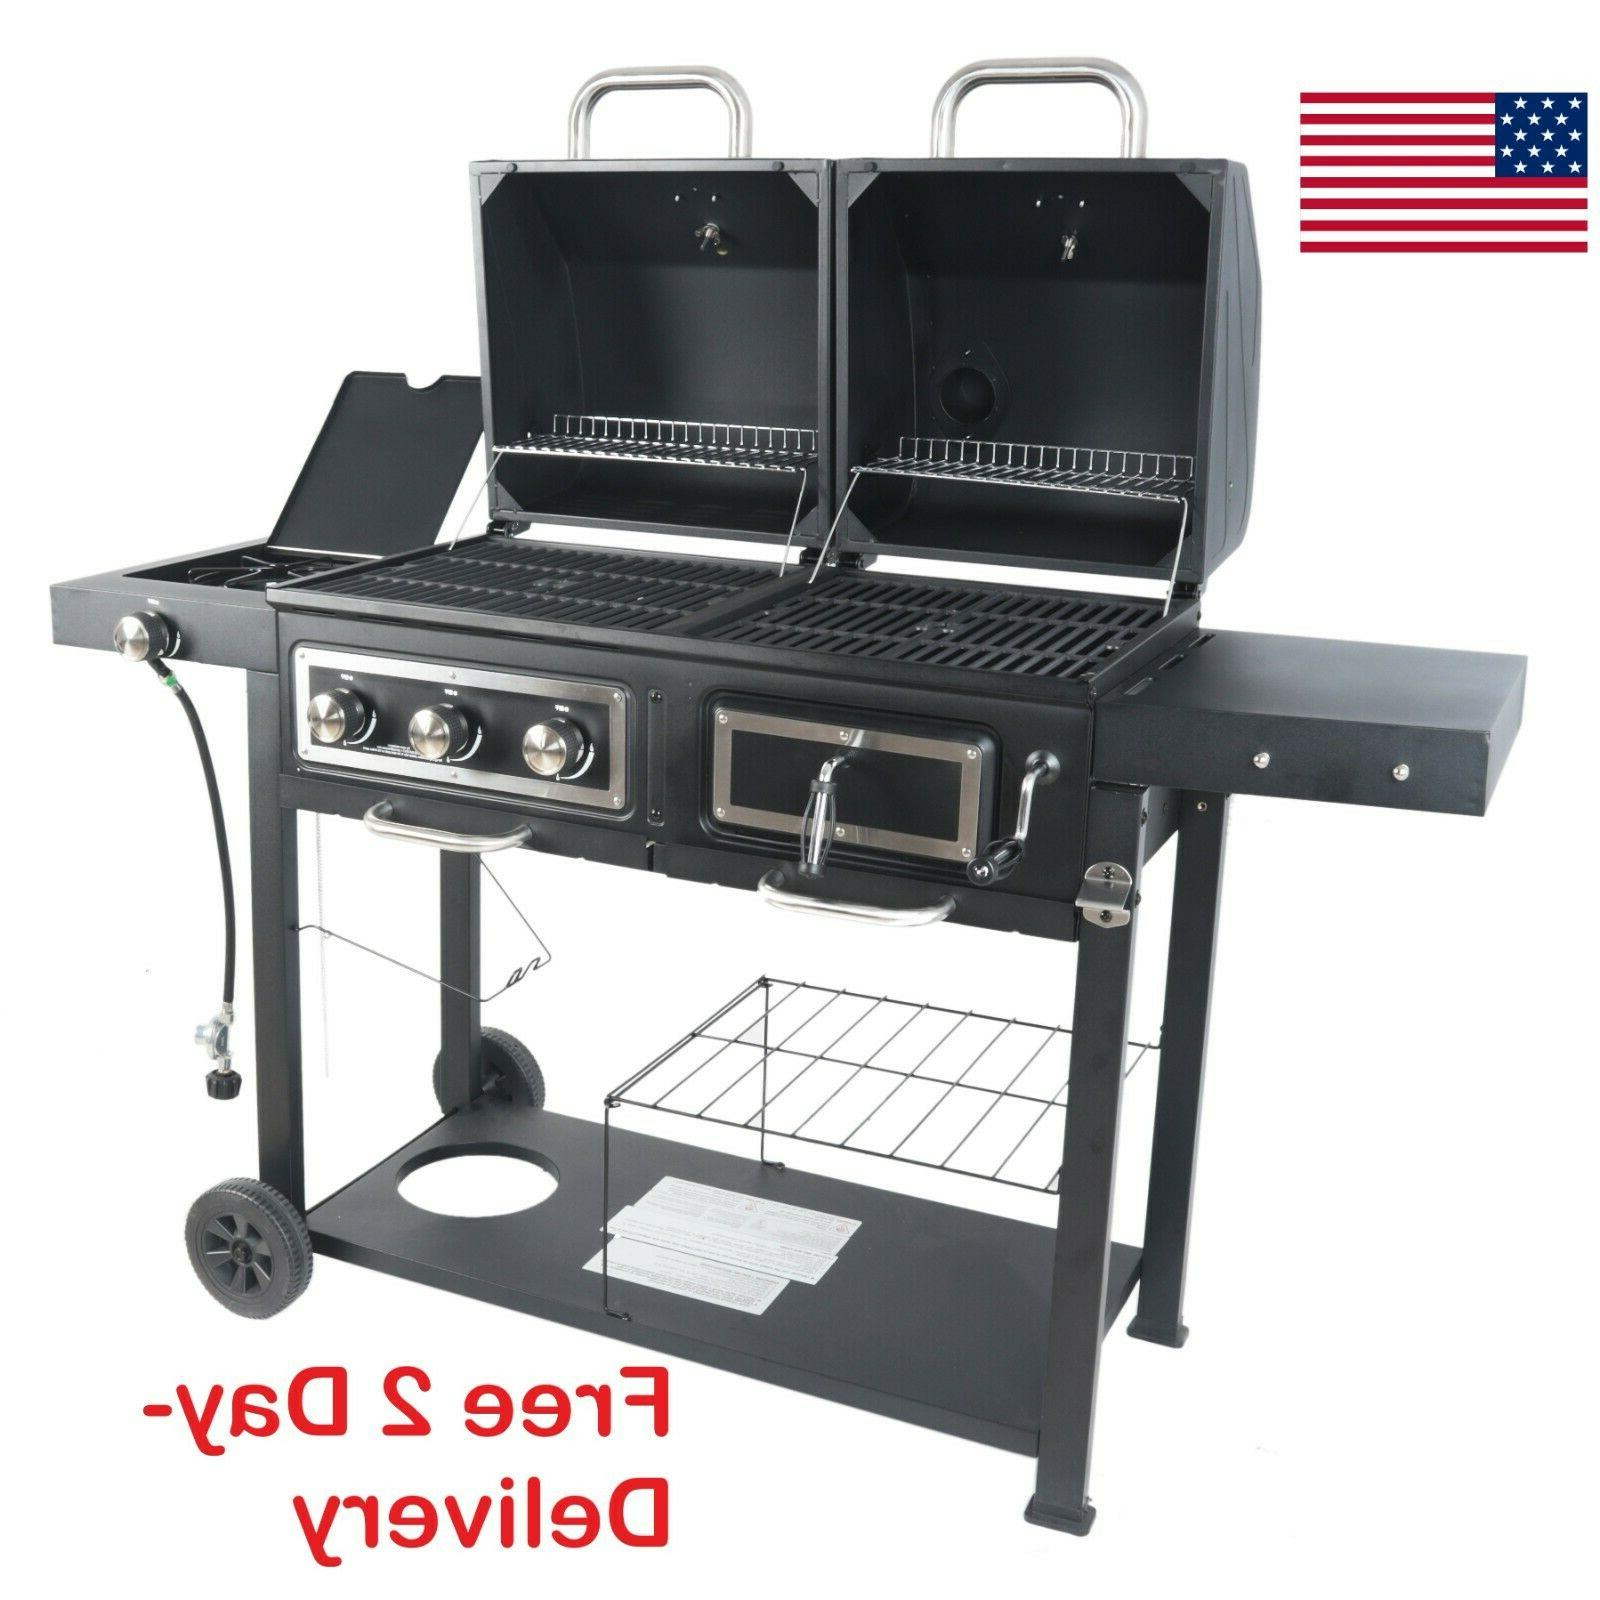 revoace dual fuel grill charcoal and gas